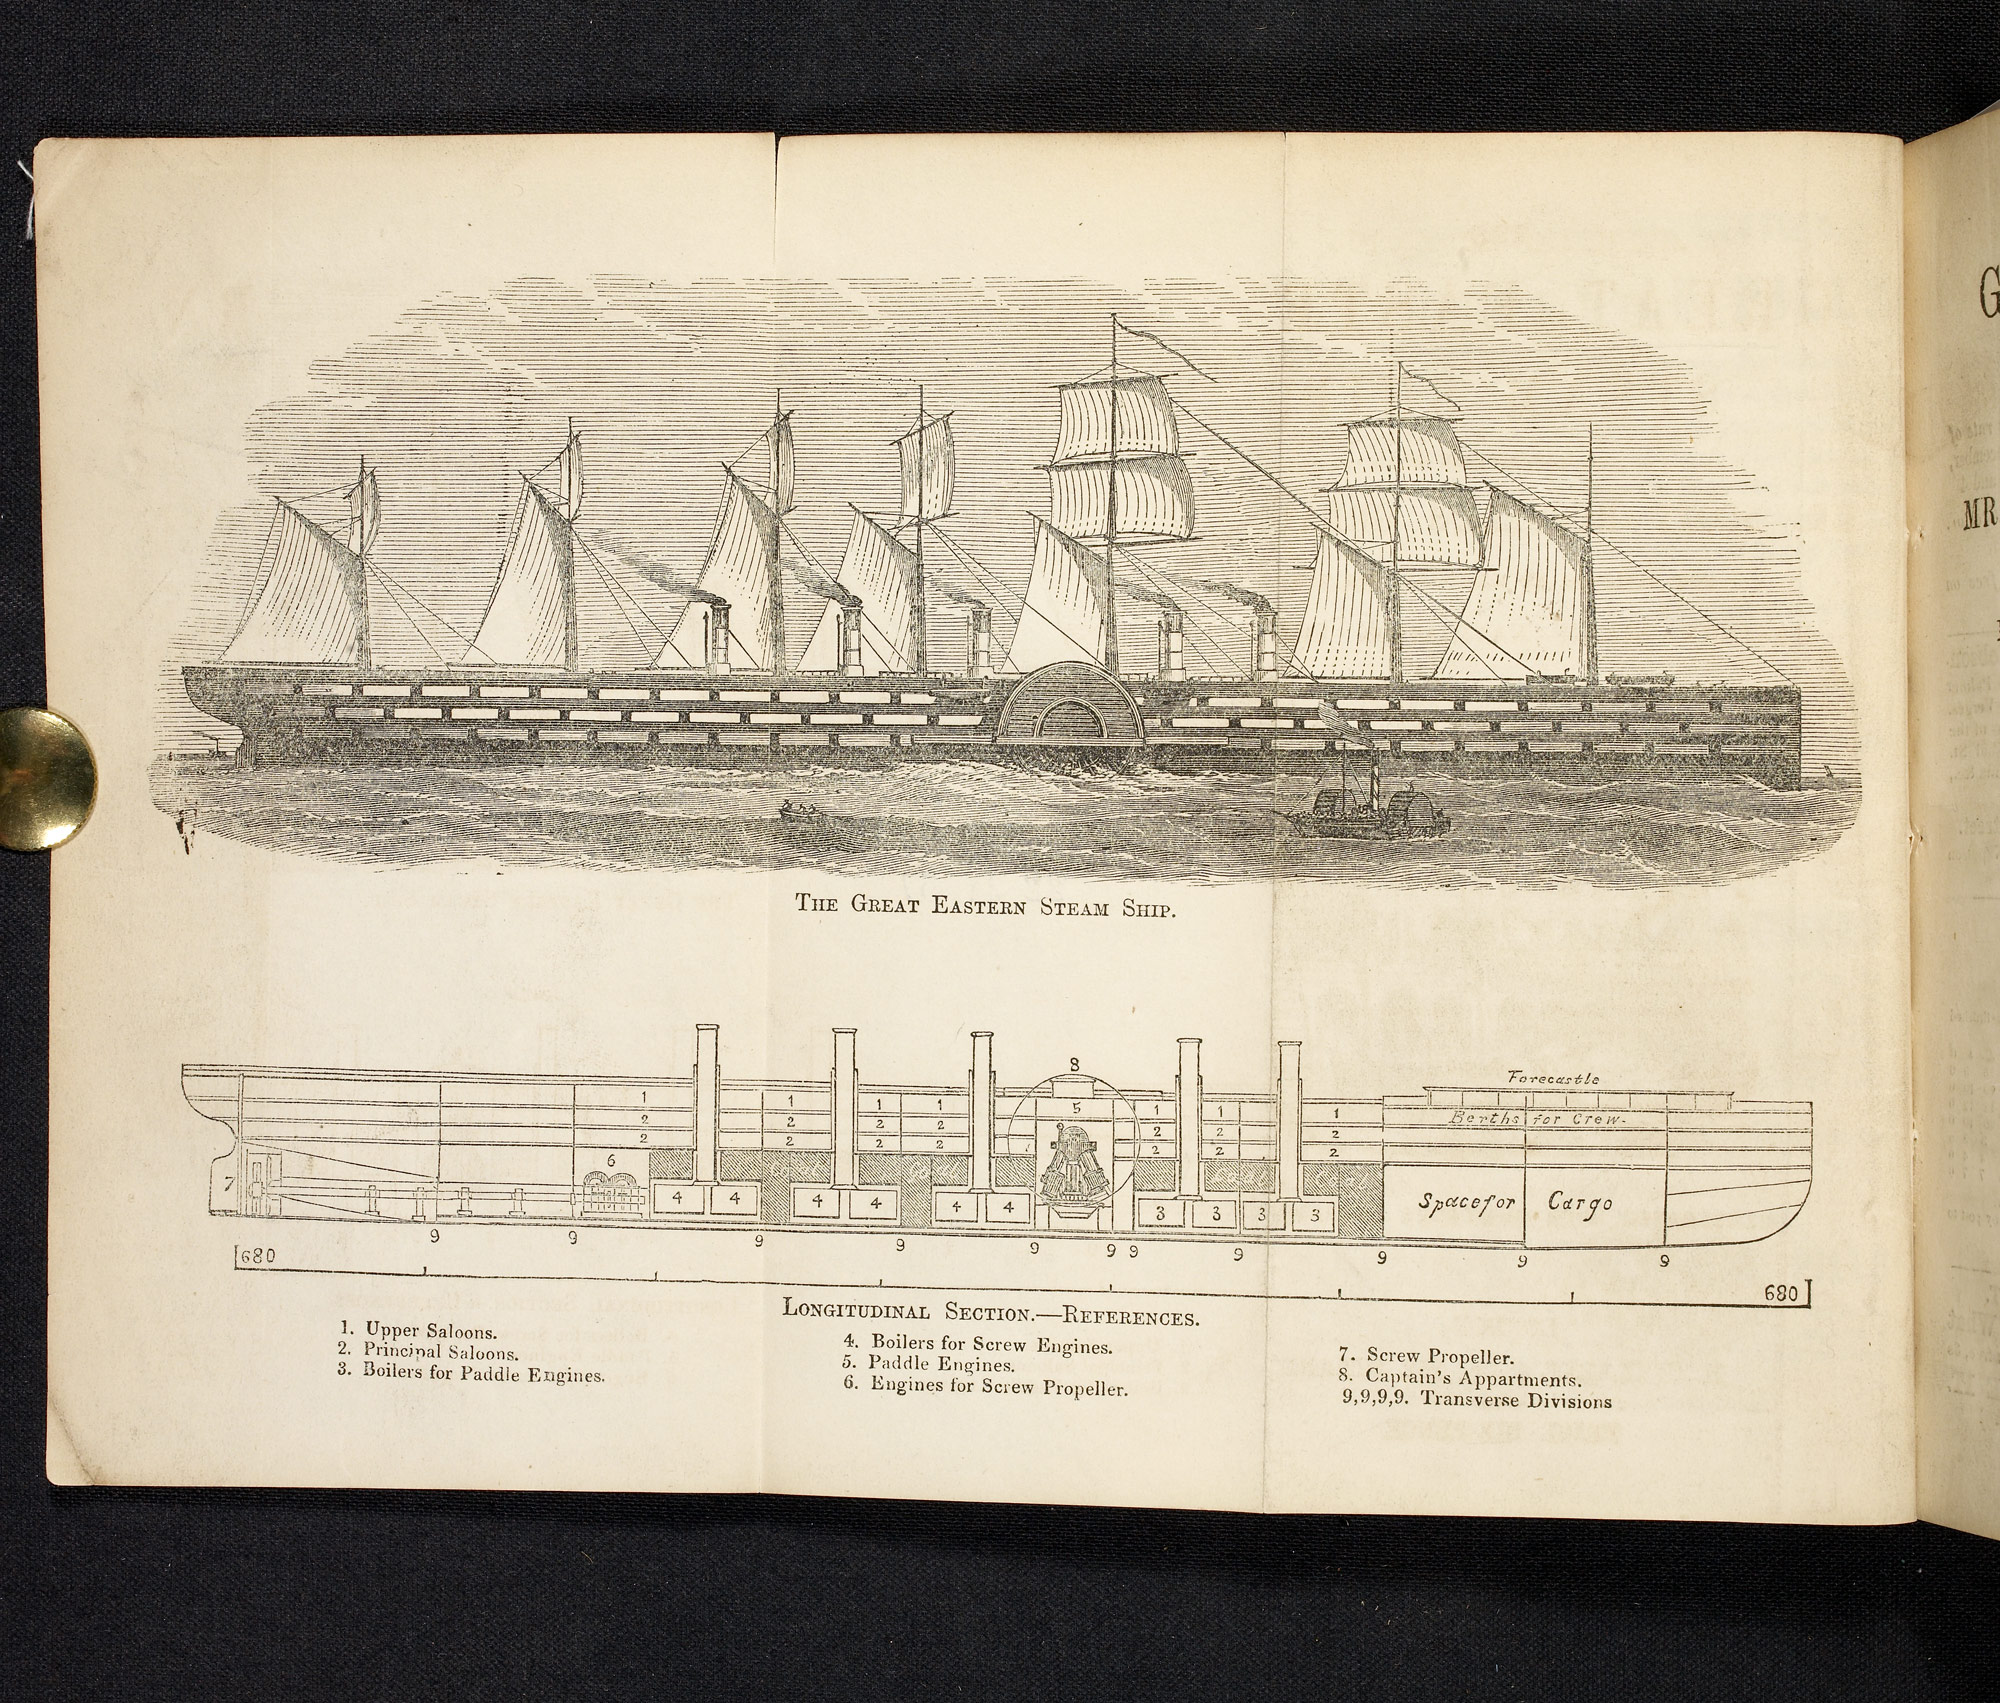 The Great Eastern Steam Ship